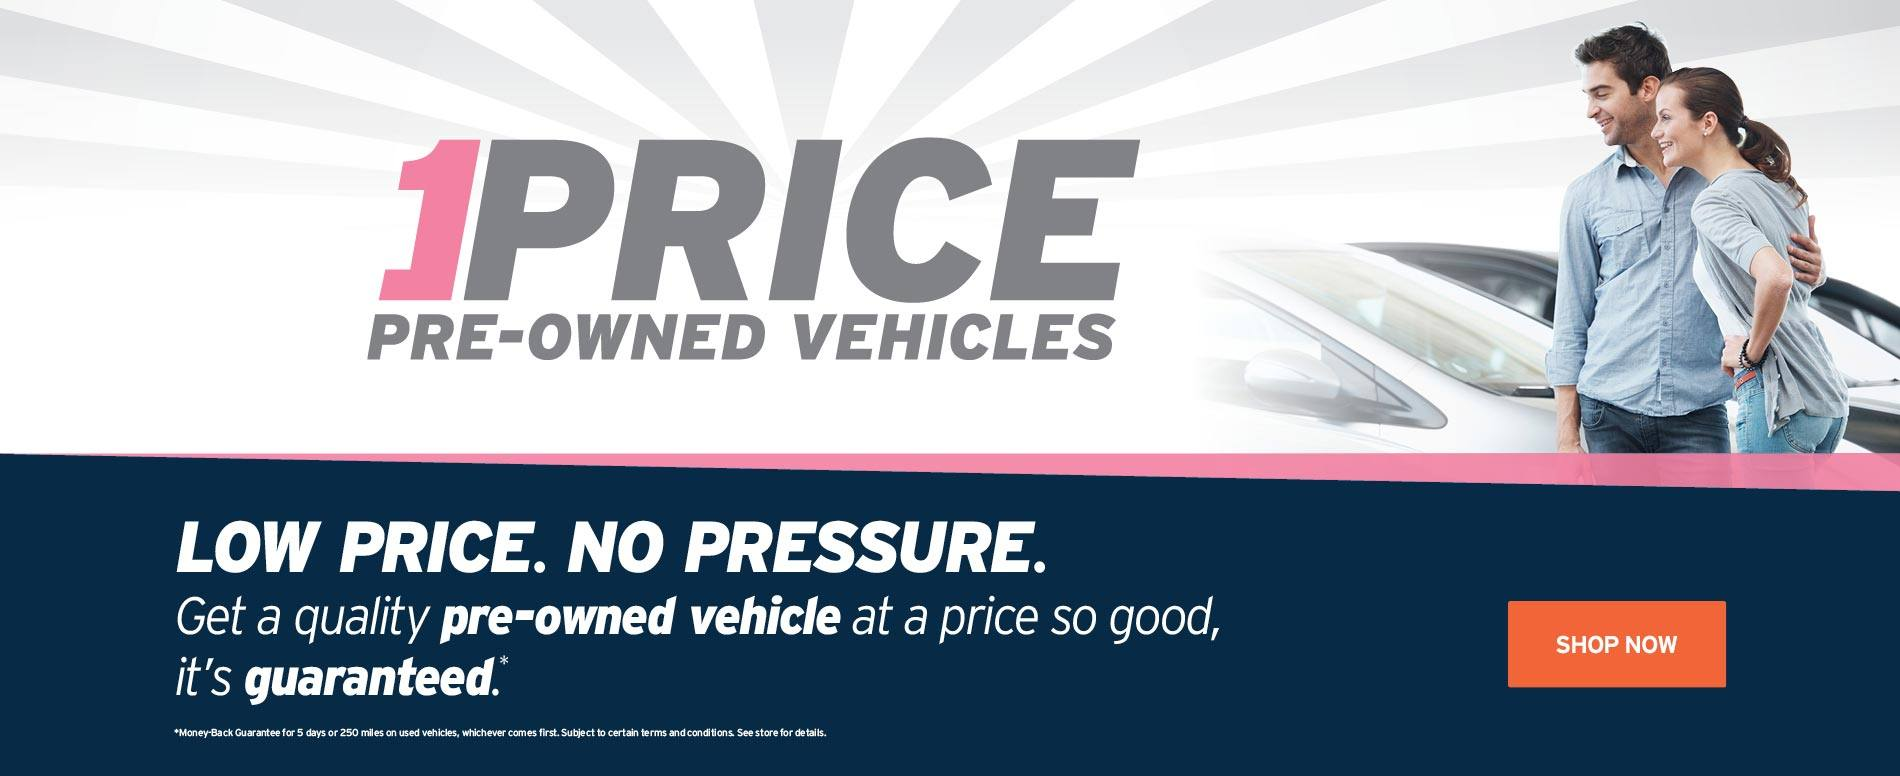 AutoNation 1Price Pre-Owned Vehicles information